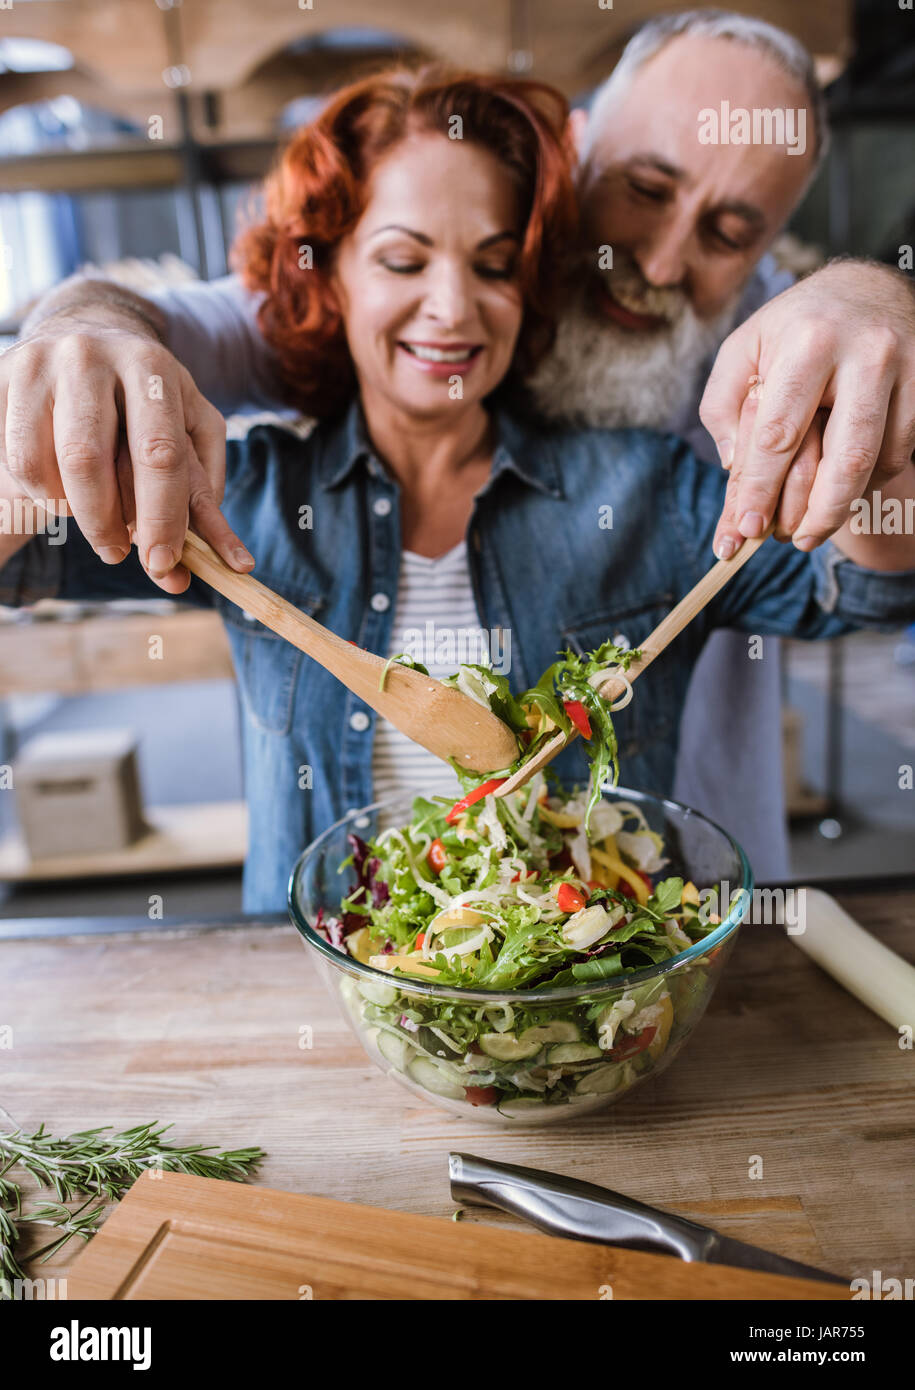 Couple cooking vegetable salad - Stock Image